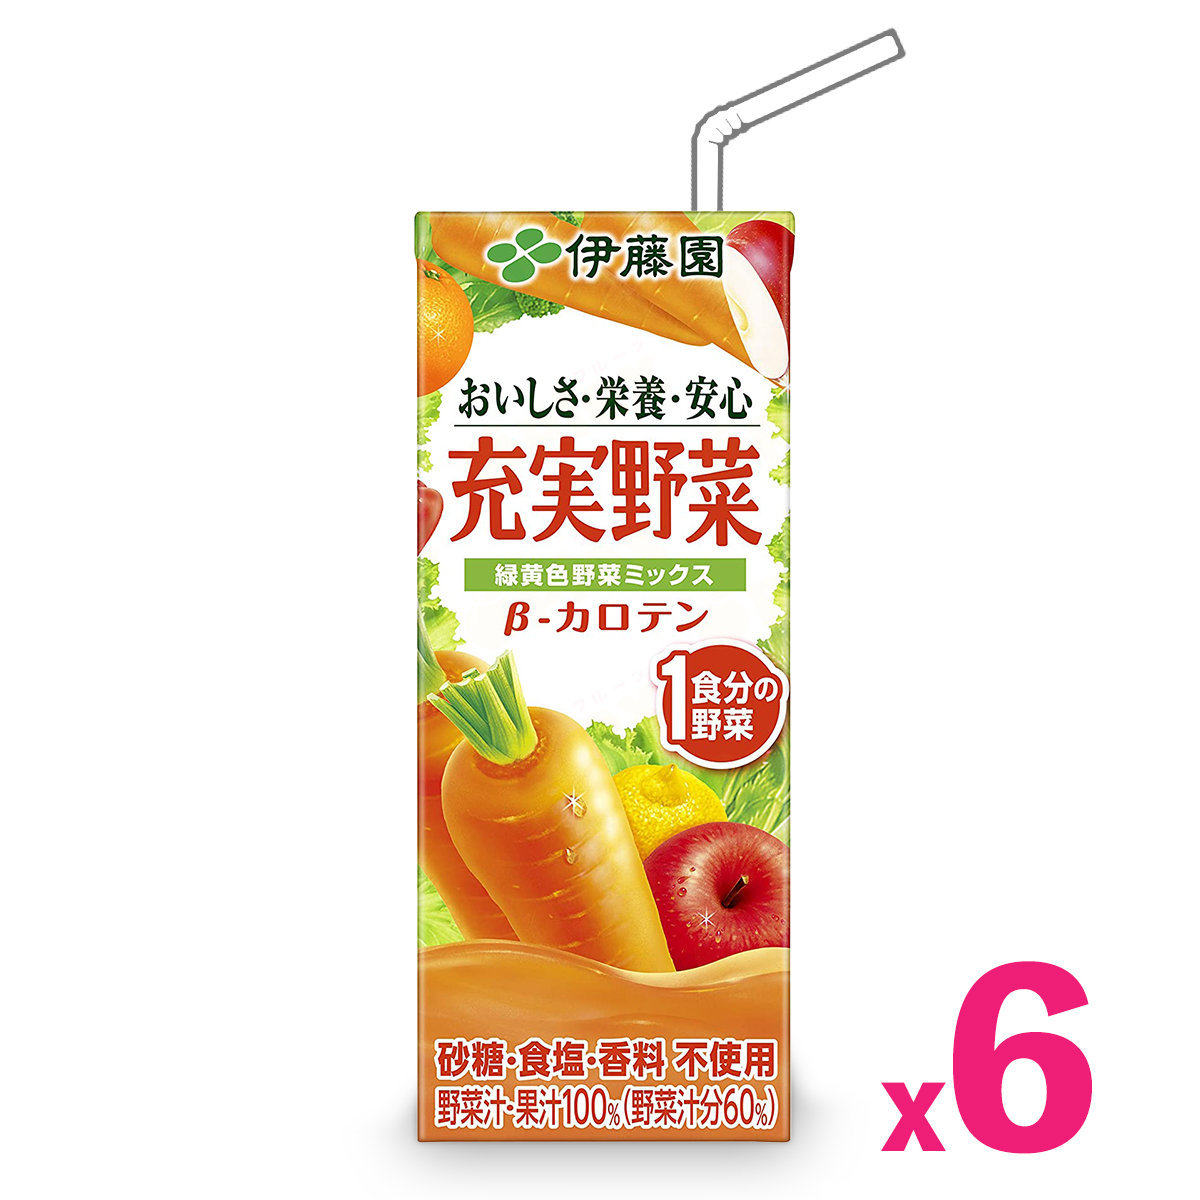 Daily Greend and Yellow Vegetables & Fruit Juice (200ml) (Red) x 6packs